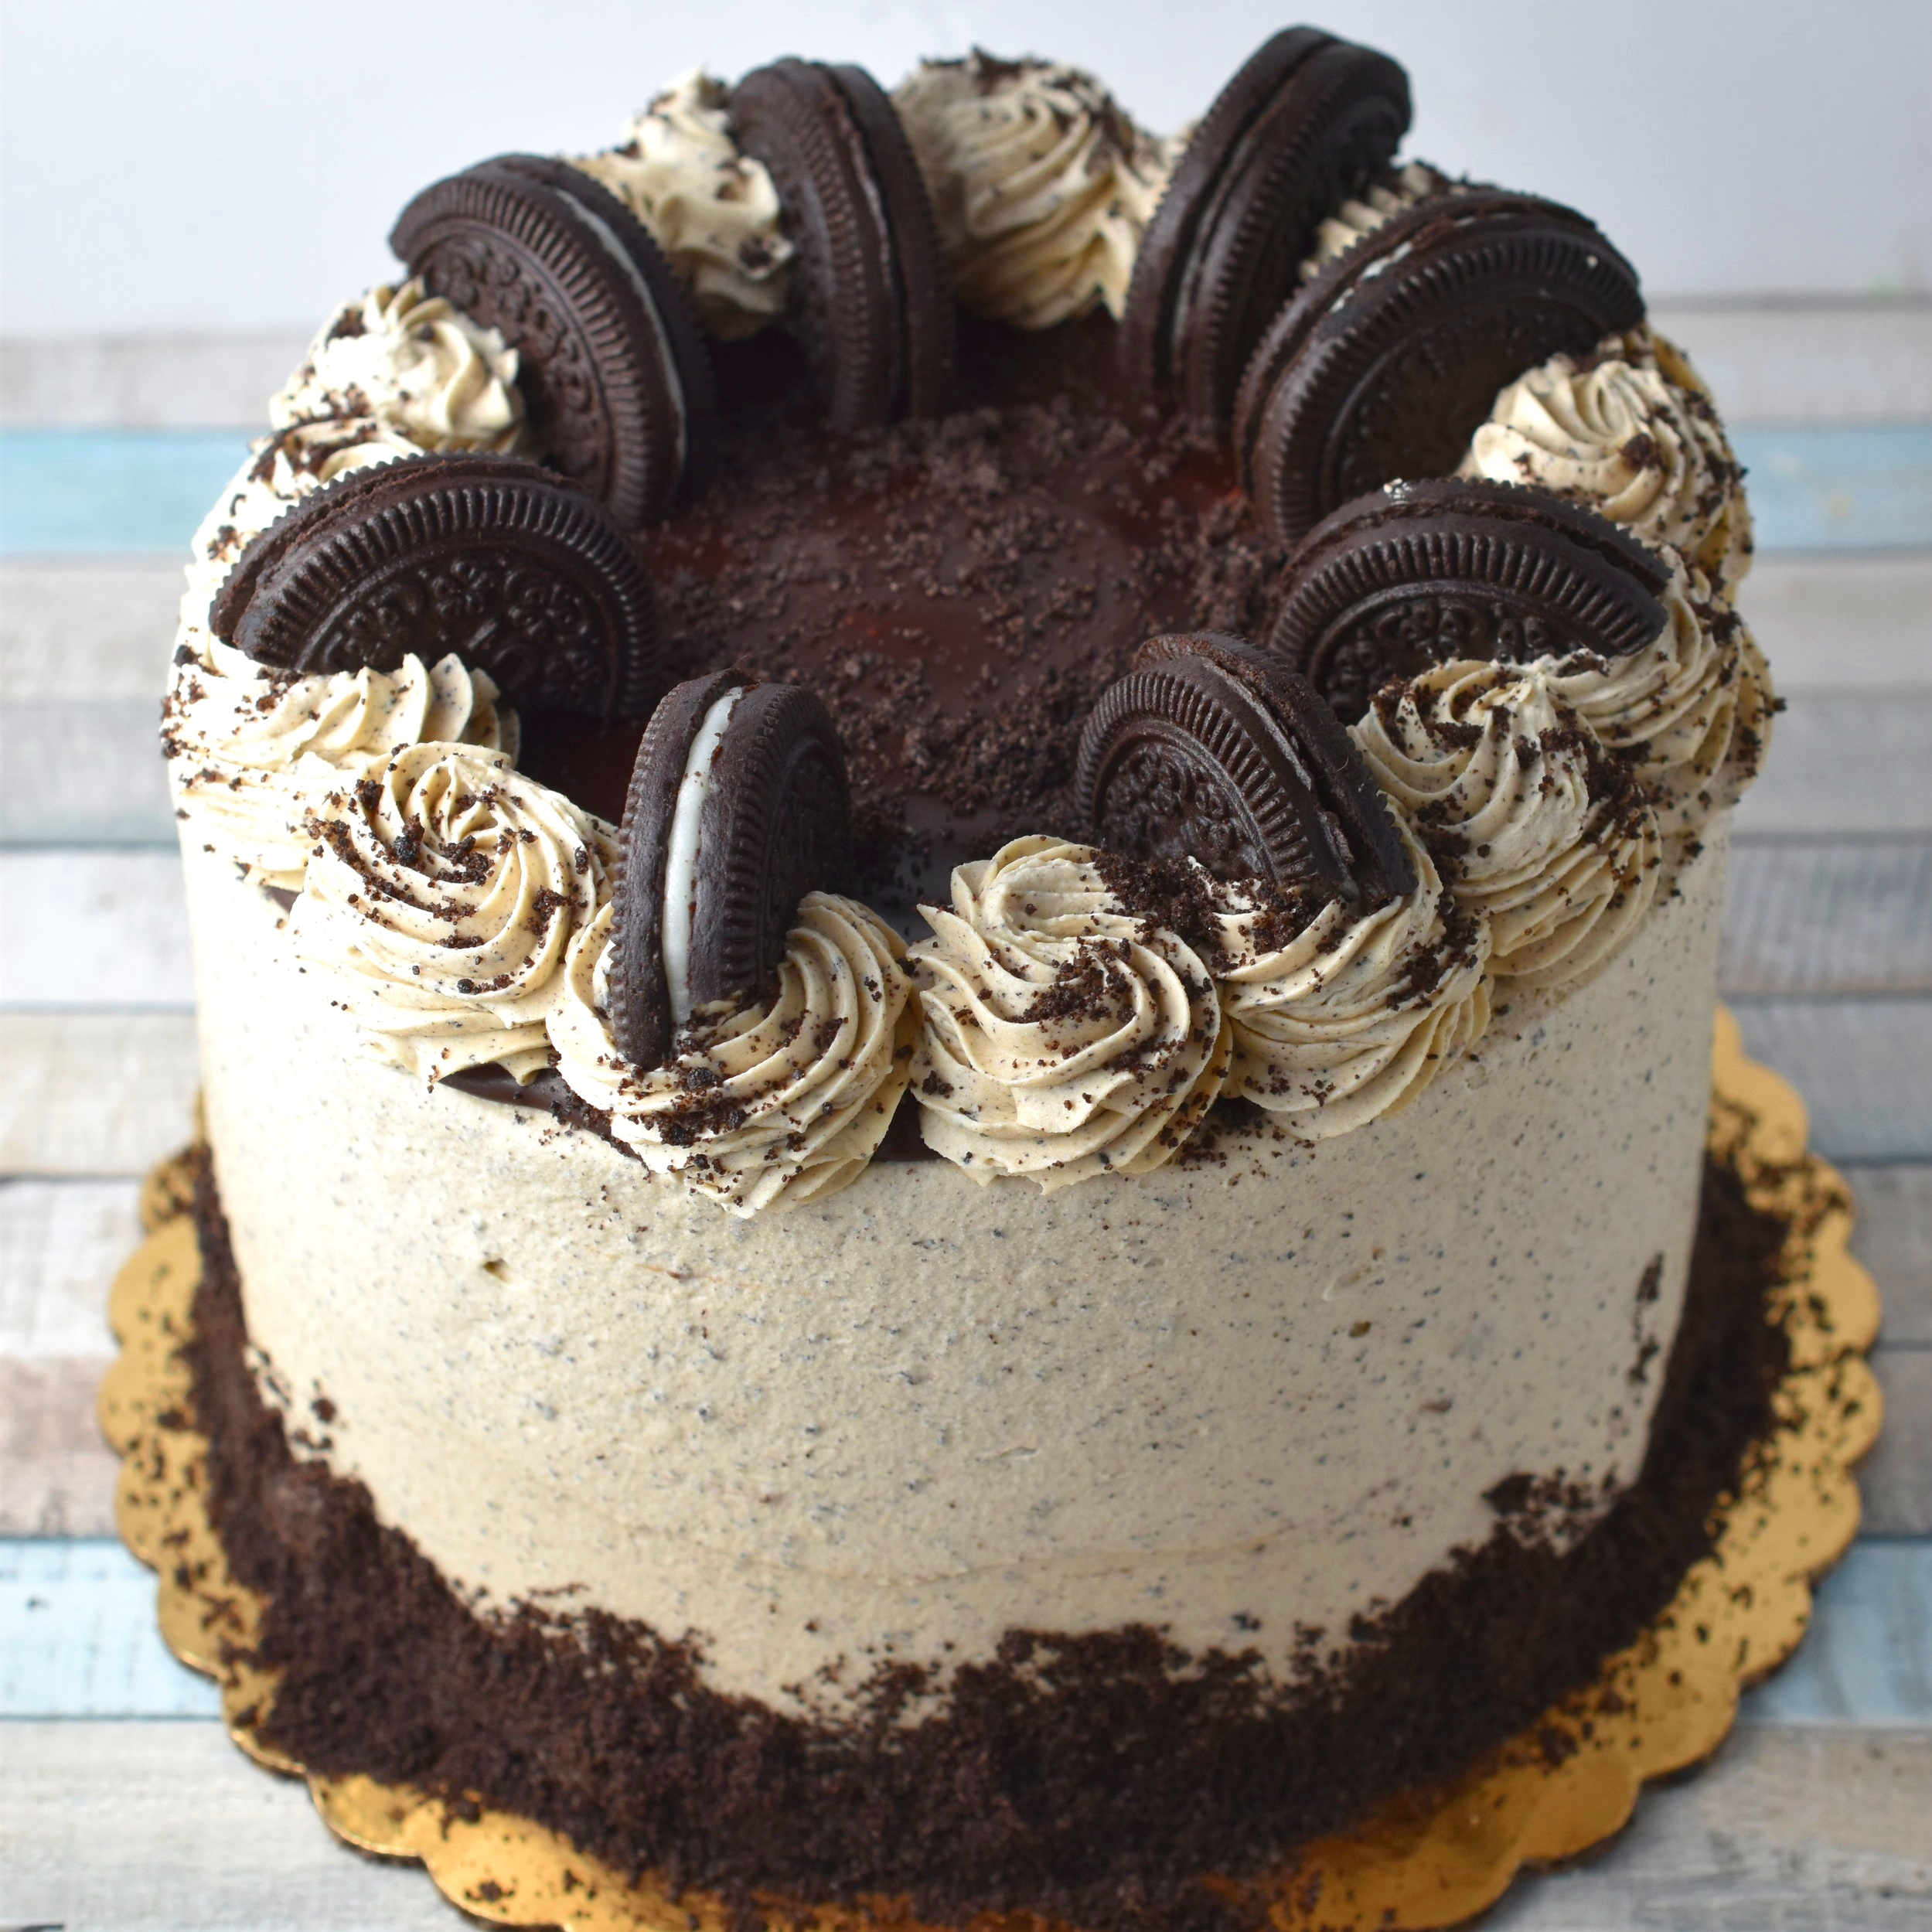 Espresso Cookie - Time for a coffee break! Give yourself a little extra get up and go with our espresso infused cake. The espresso frosting is filled with a crushed all natural version of an oreo and covers our popular chocolate cake . Sandwiched between the layers is our rich chocolate ganache.